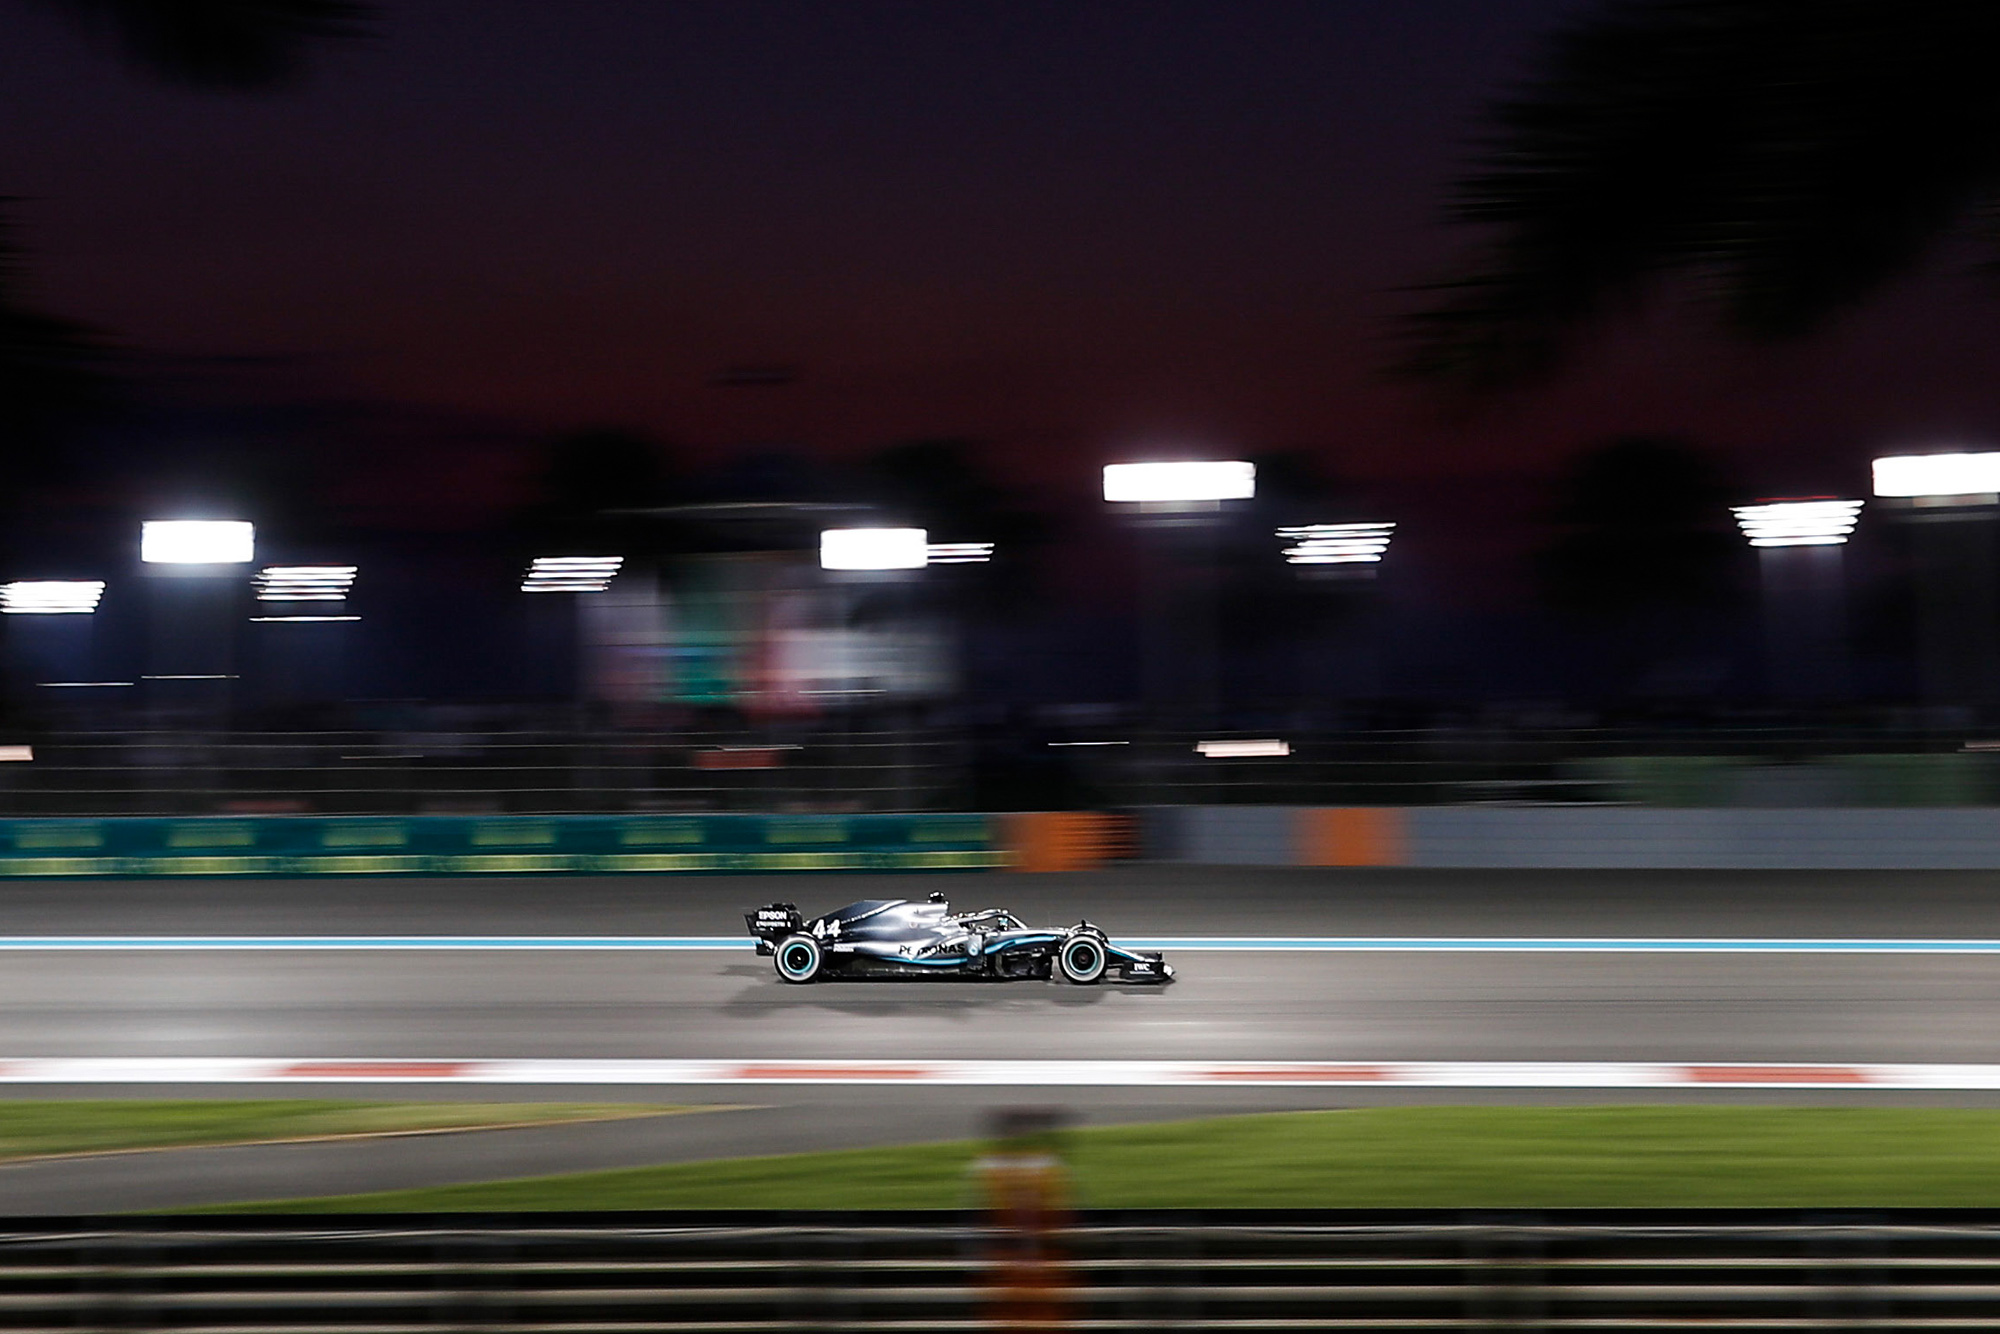 Lewis Hamilton panning shot at the 2019 Abu Dhabi GP